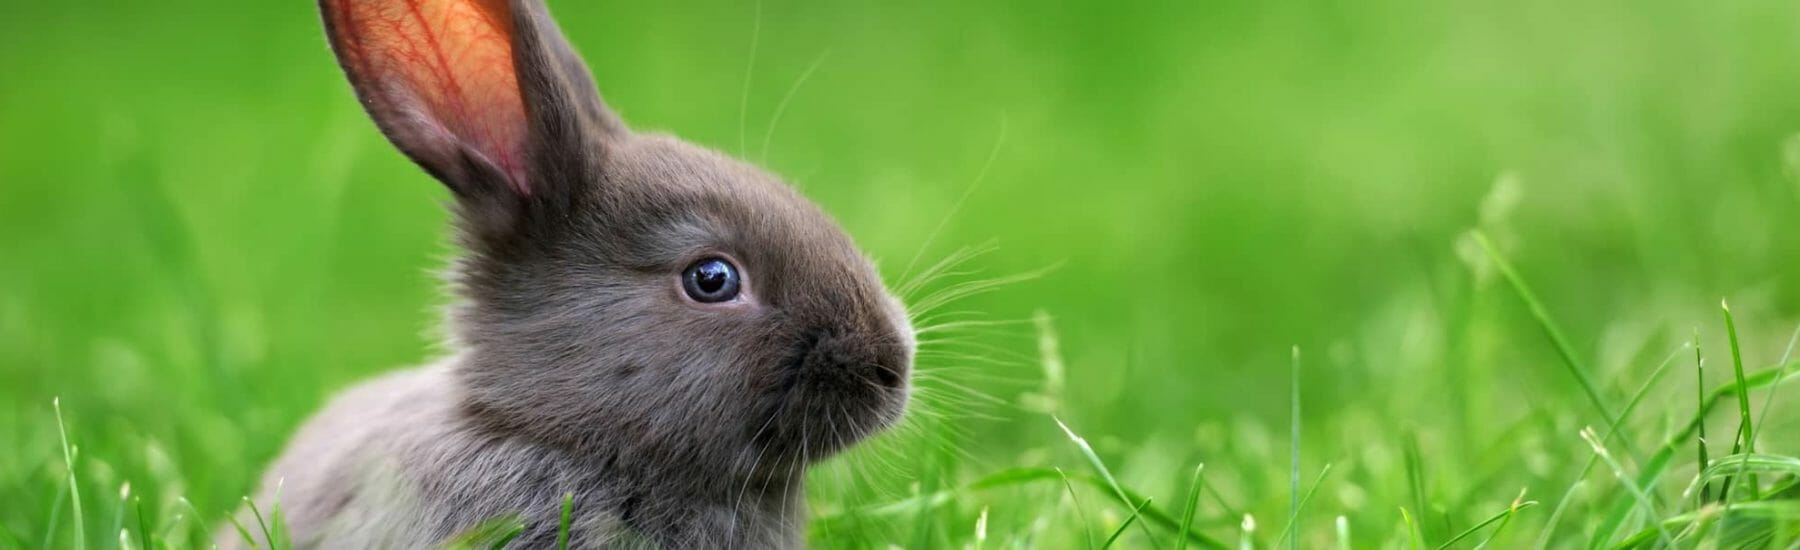 Small grey bunny with blue eyes sitting in the grass